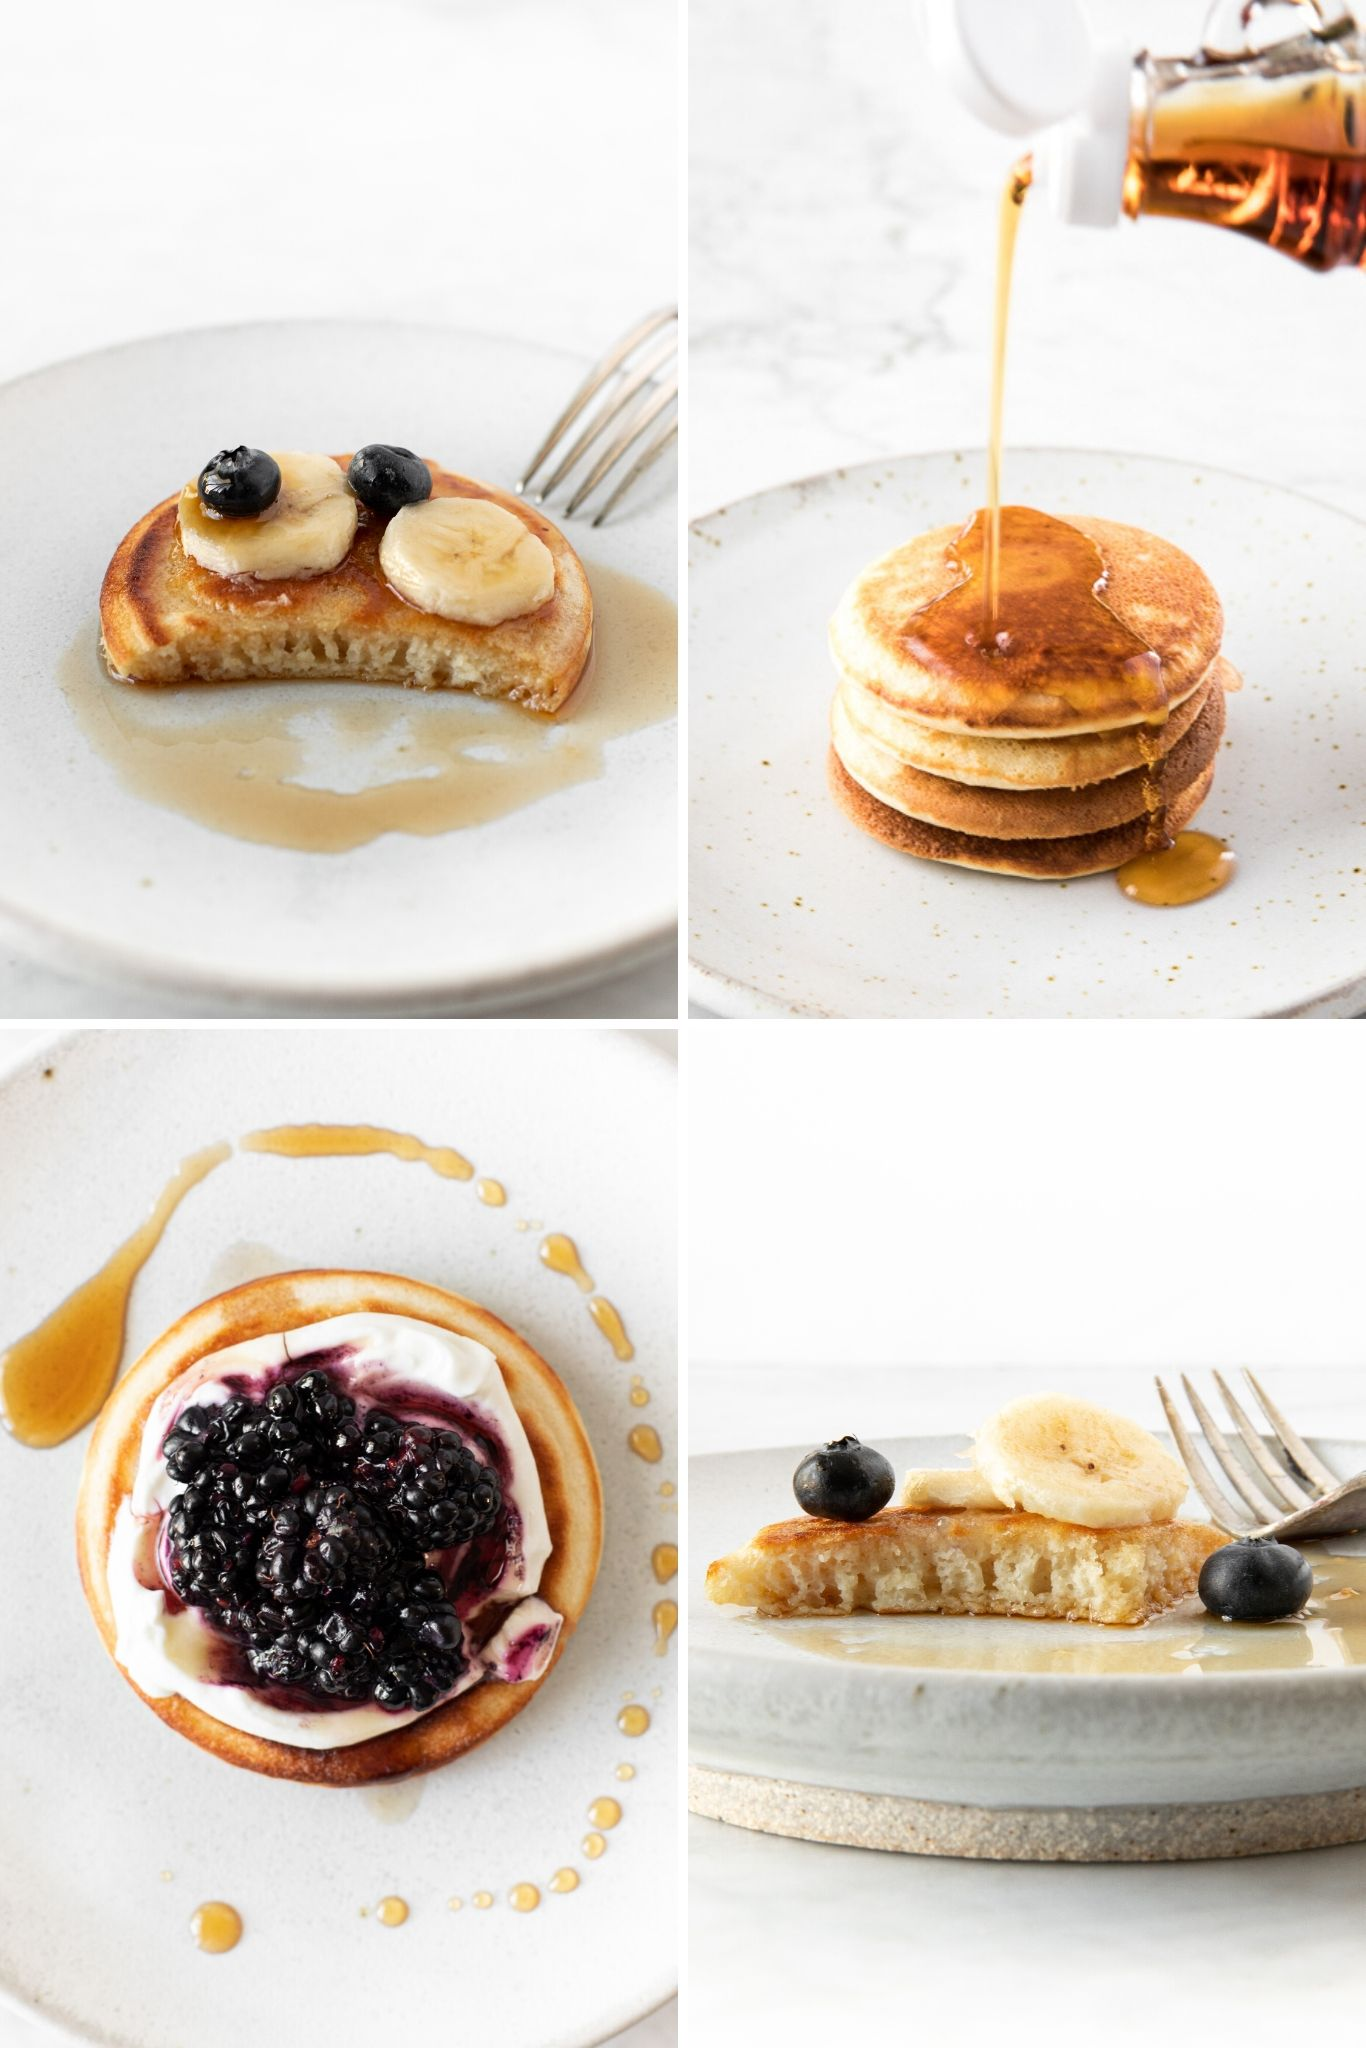 Fluffy Bohemian pancakes served with yogurt and blackberries, maple syrup, bananas and blueberries, and dipped in cinnamon sugar | verygoodcook.com